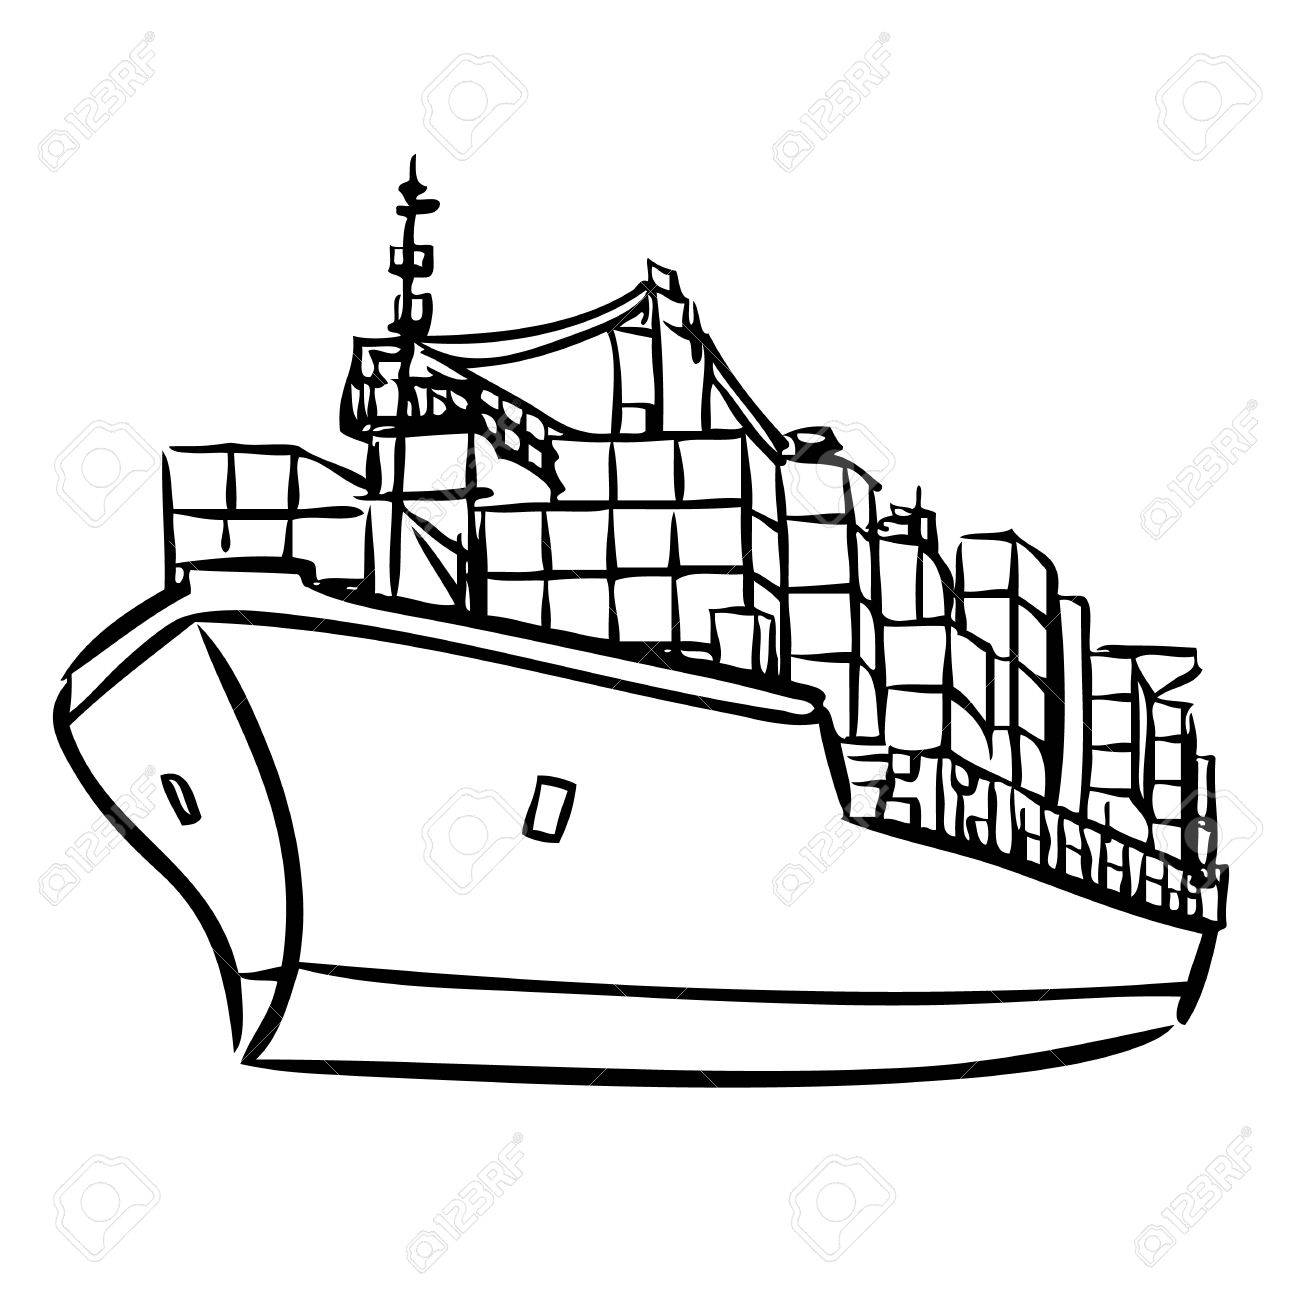 Ship Outline Drawing At Getdrawings